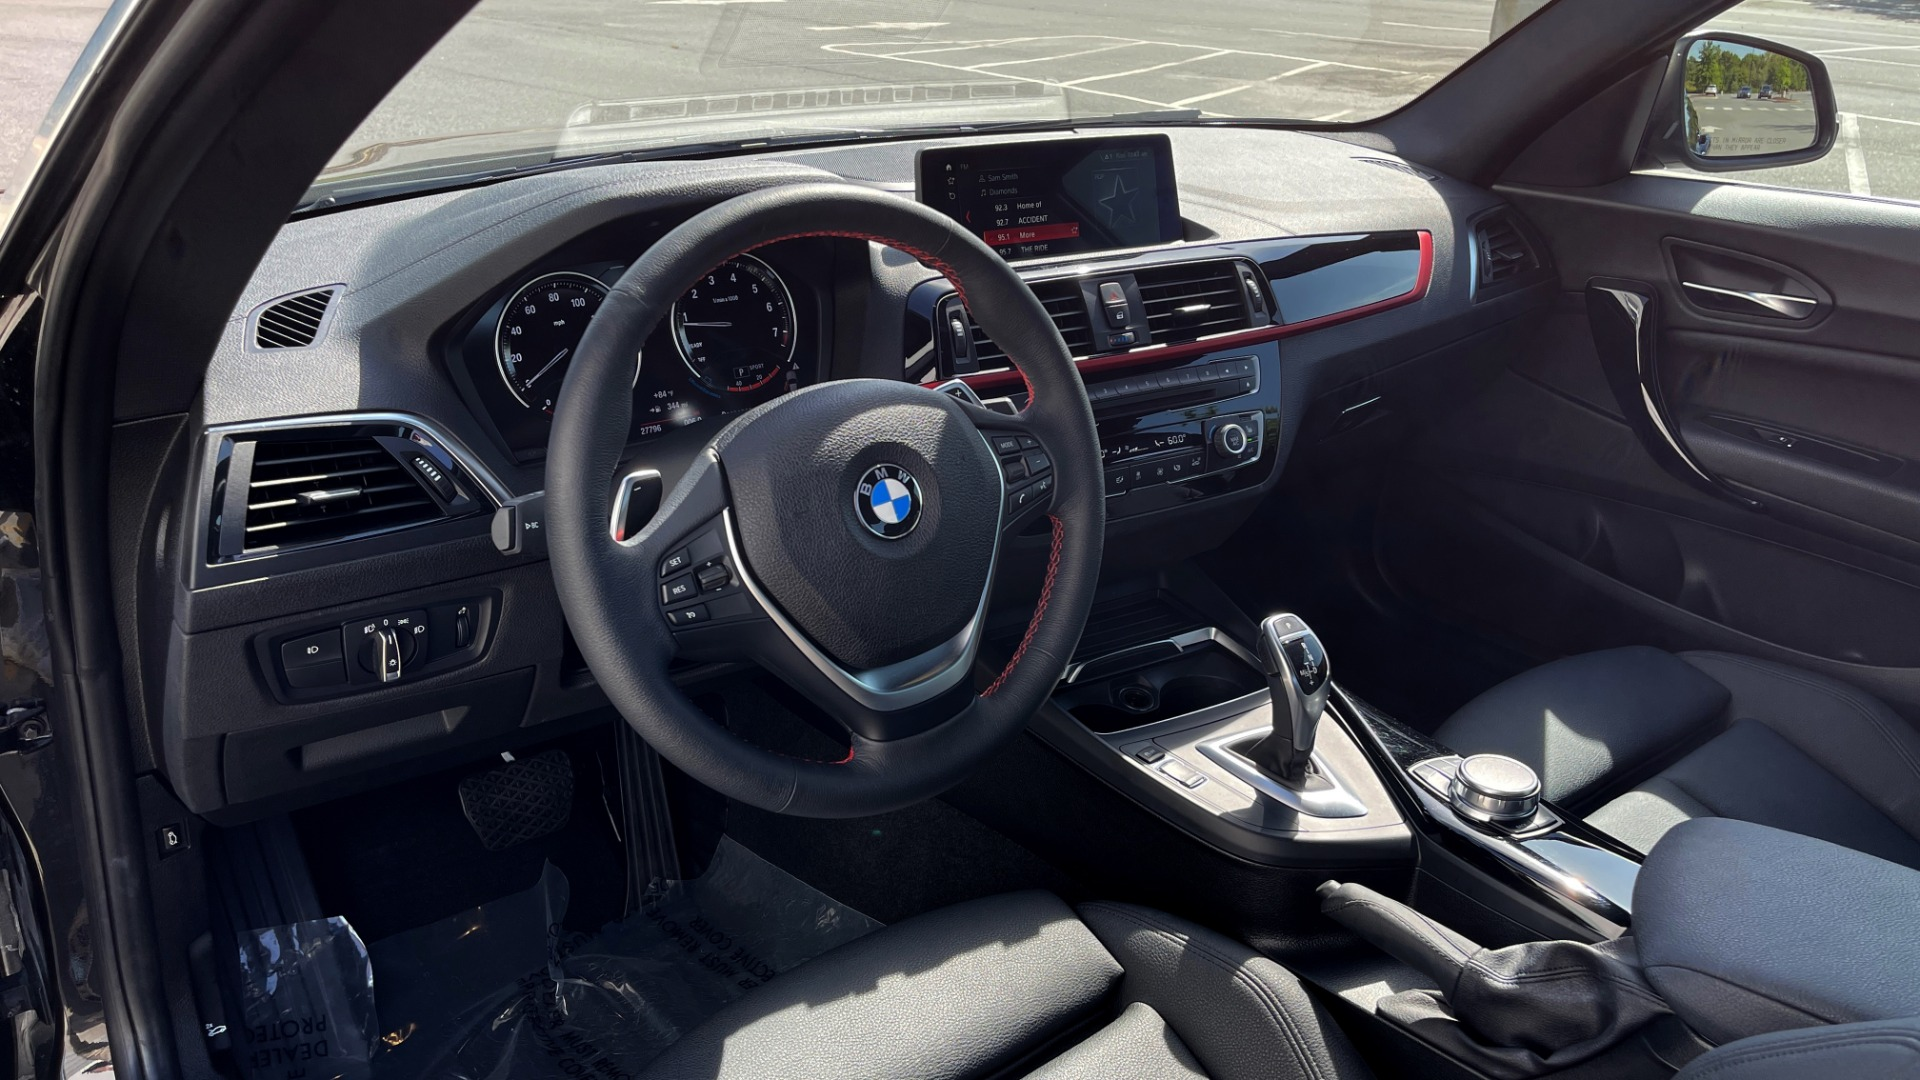 Used 2018 BMW 2 SERIES 230I XDRIVE PREMIUM / CONV PKG / NAV / SUNROOF / REARVIEW for sale $30,795 at Formula Imports in Charlotte NC 28227 25